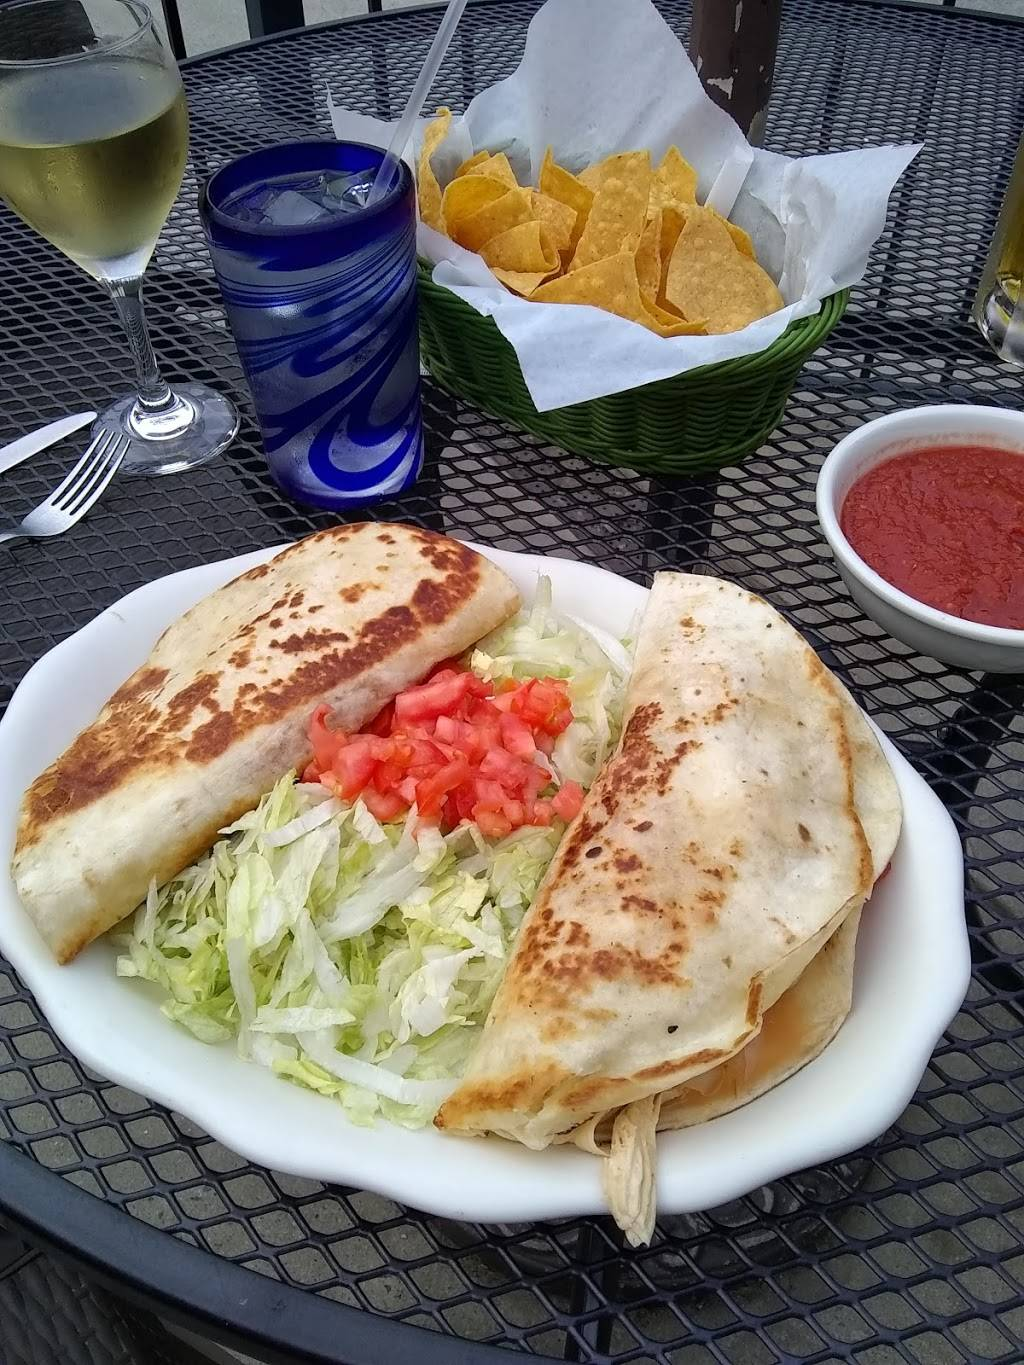 Monte De Rey Mexican Restaurant | restaurant | 4922 Old Country Club Rd, Winston-Salem, NC 27104, USA | 3367651424 OR +1 336-765-1424